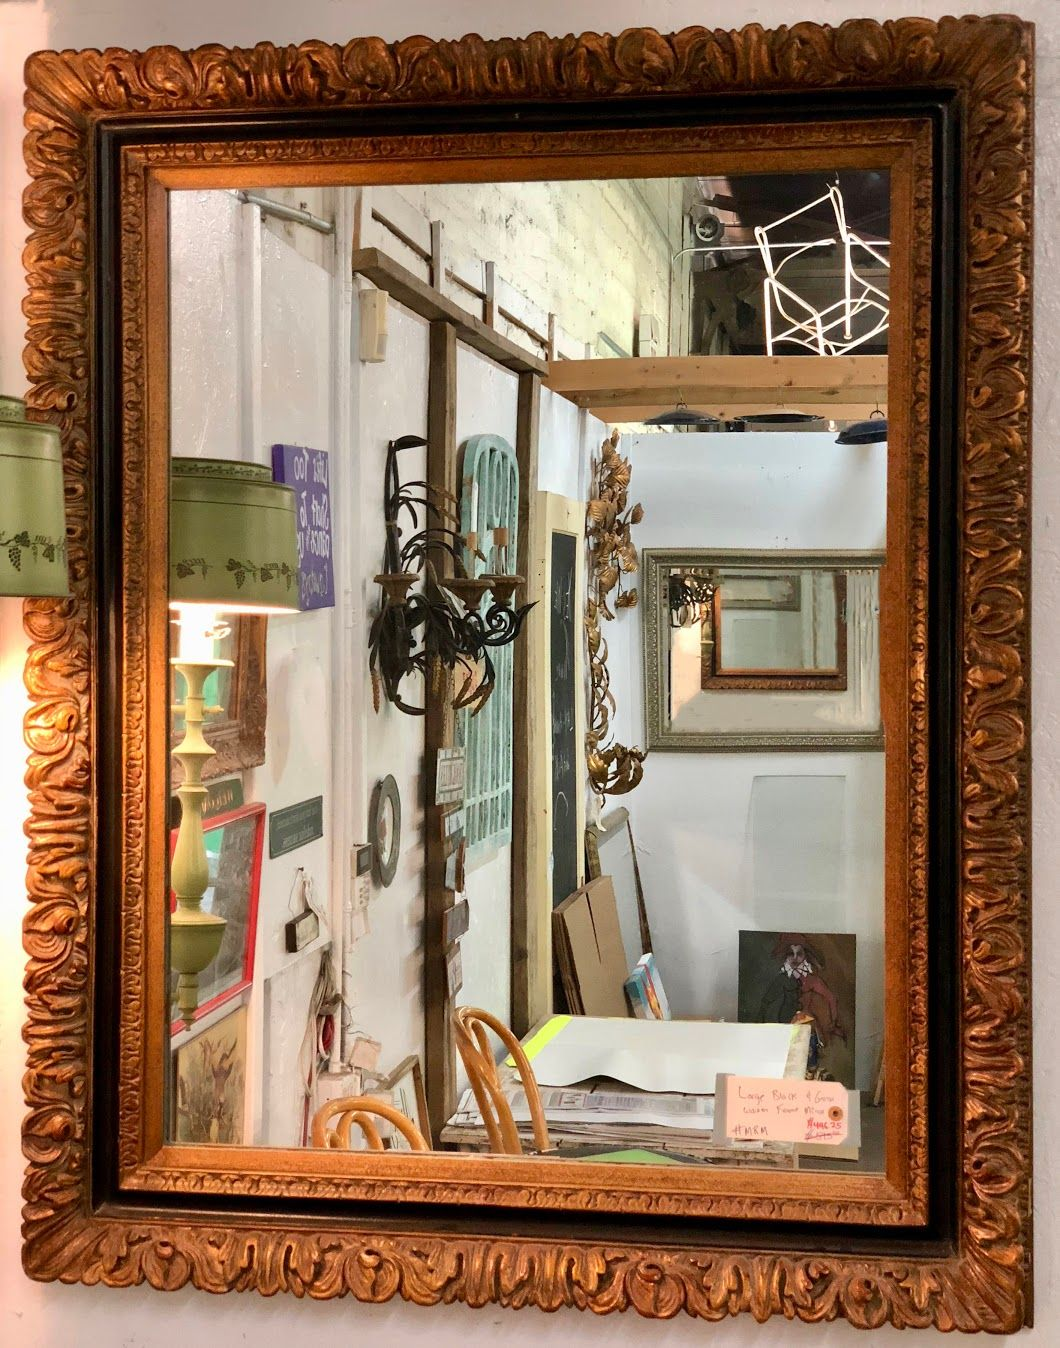 large black and gold wooden frame mirror on sale 40 wide x 50 high